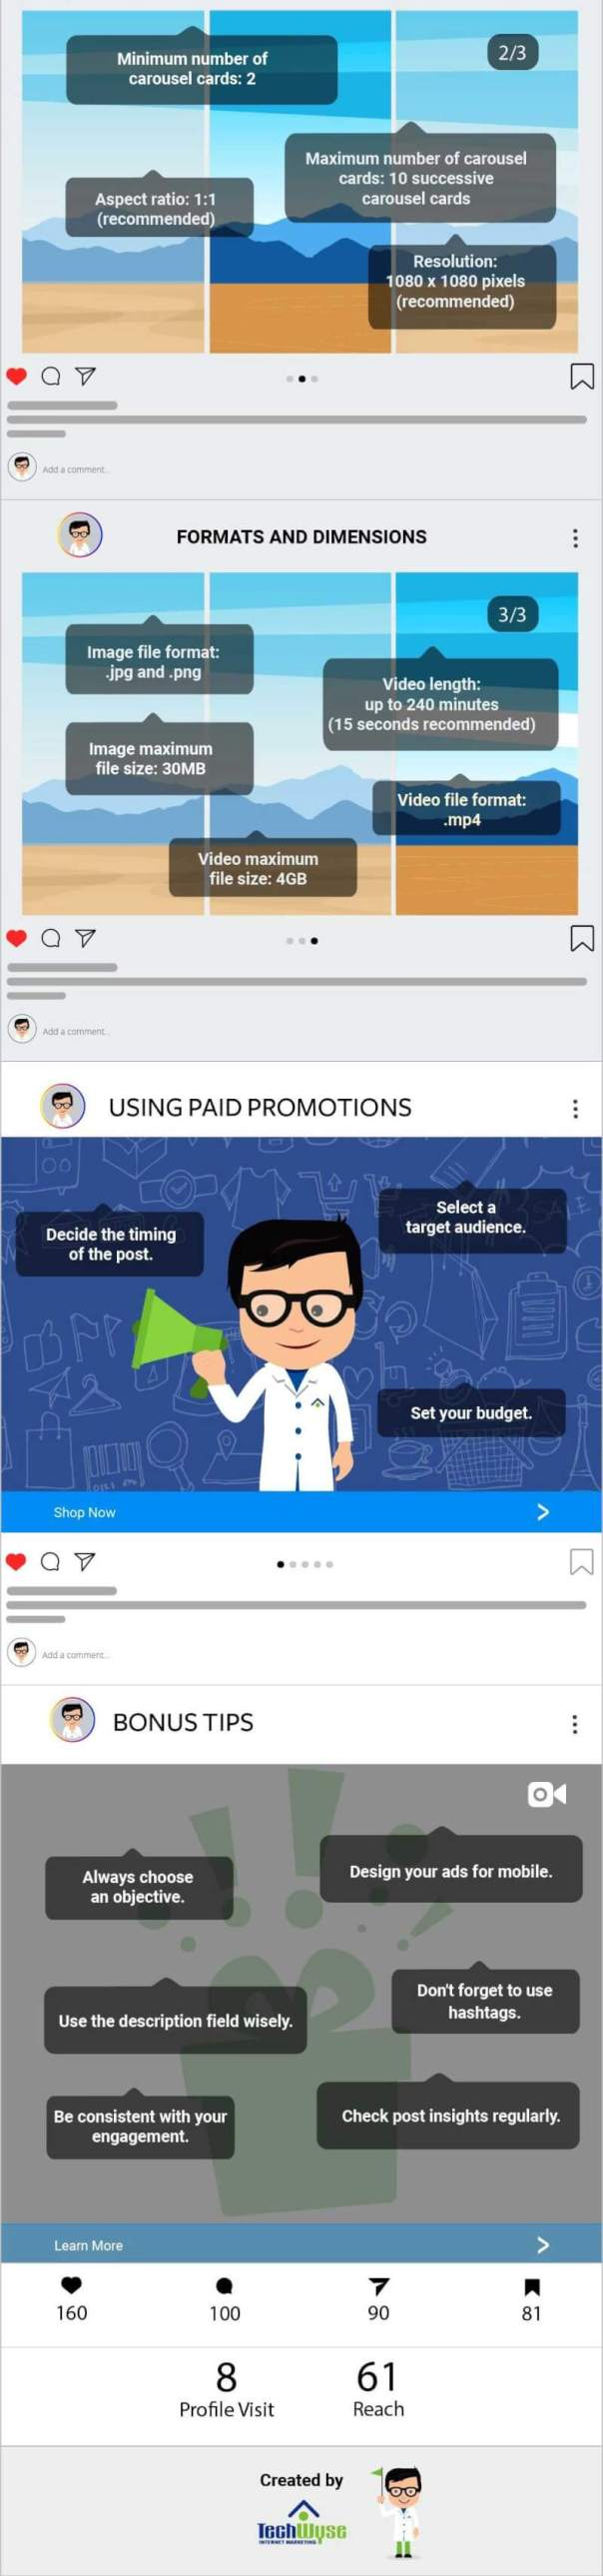 Infographic-Guide-to-Instagram-Business-Account_05